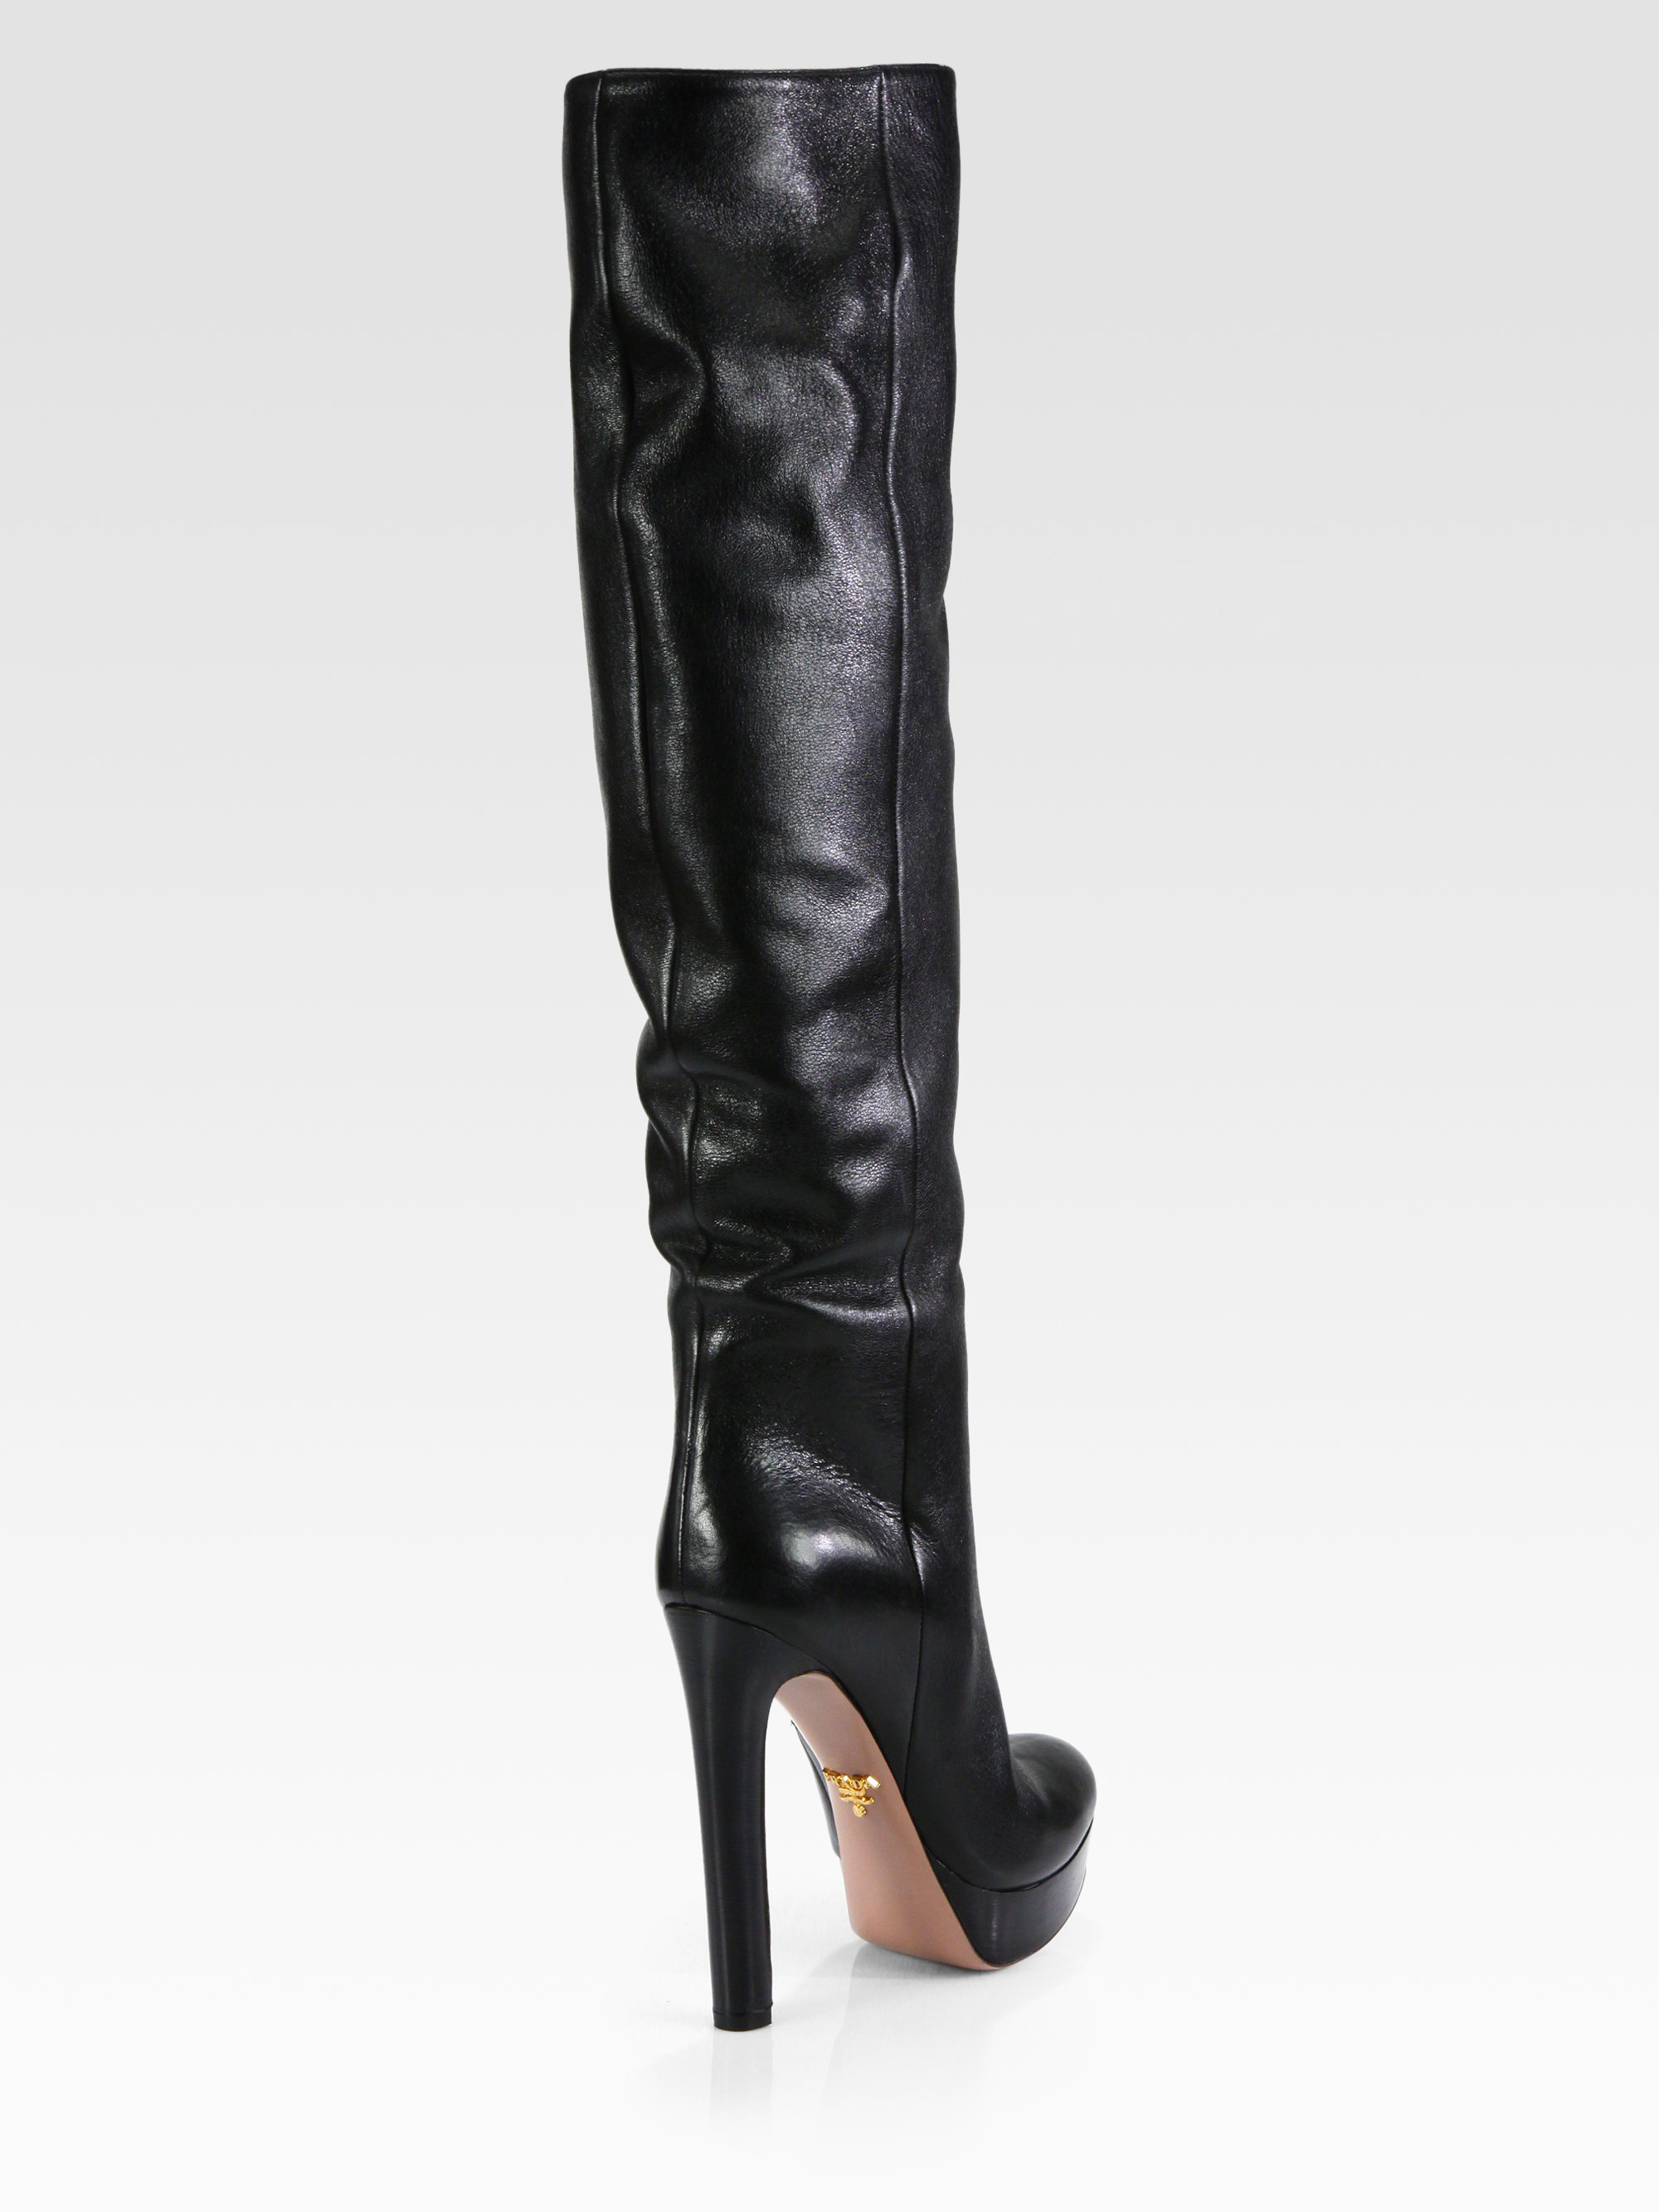 Prada Leather Knee-High Boots clearance how much PXlWCA